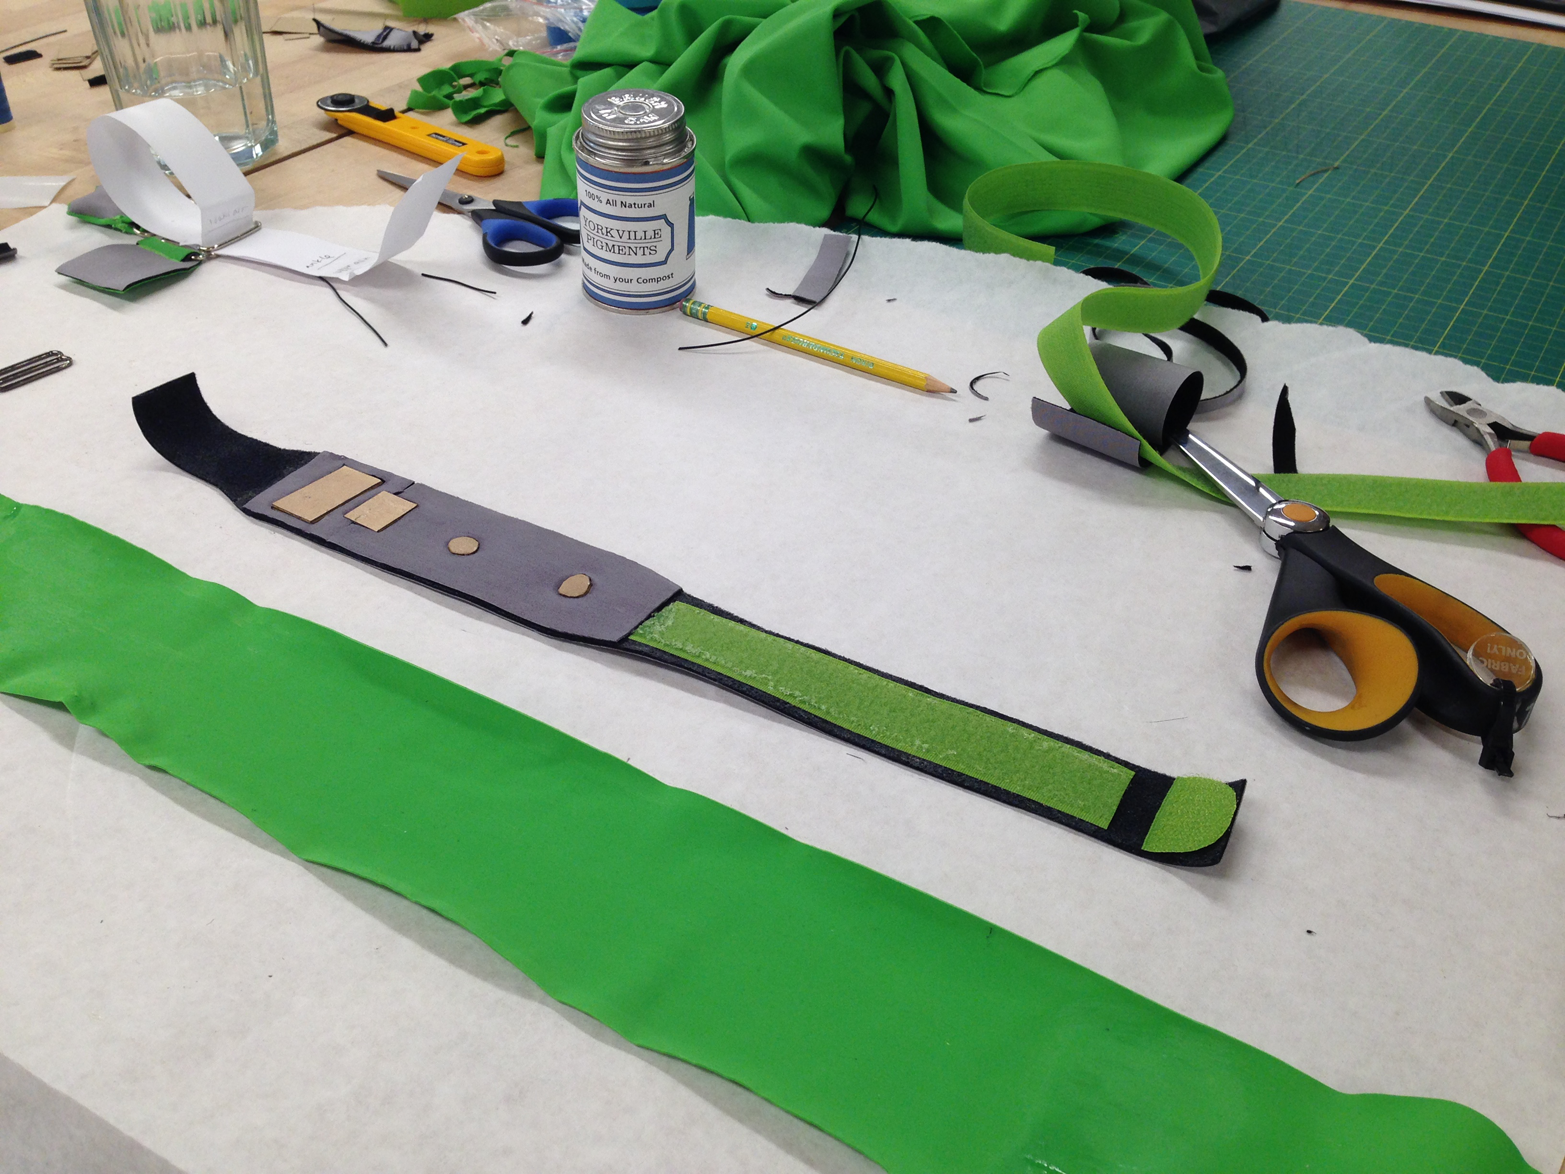 The fifth prototype tested materials for a sports use case